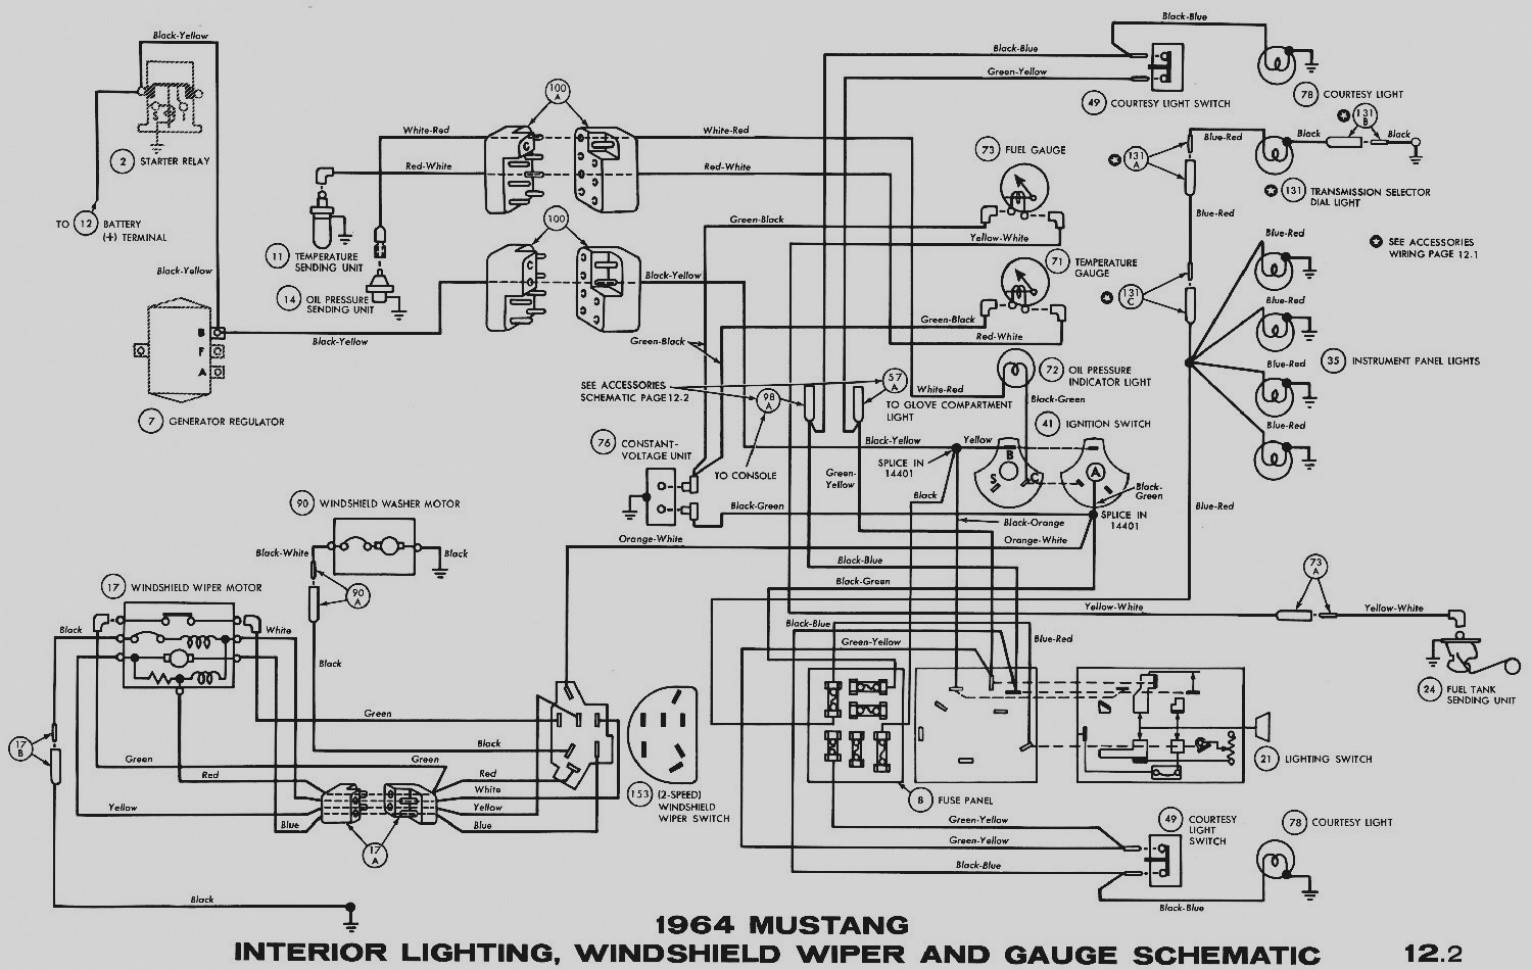 Electrical Schematic Light Wiring Diagram Simple Basic House Diagrams Series 89 Chevy Tail Auto